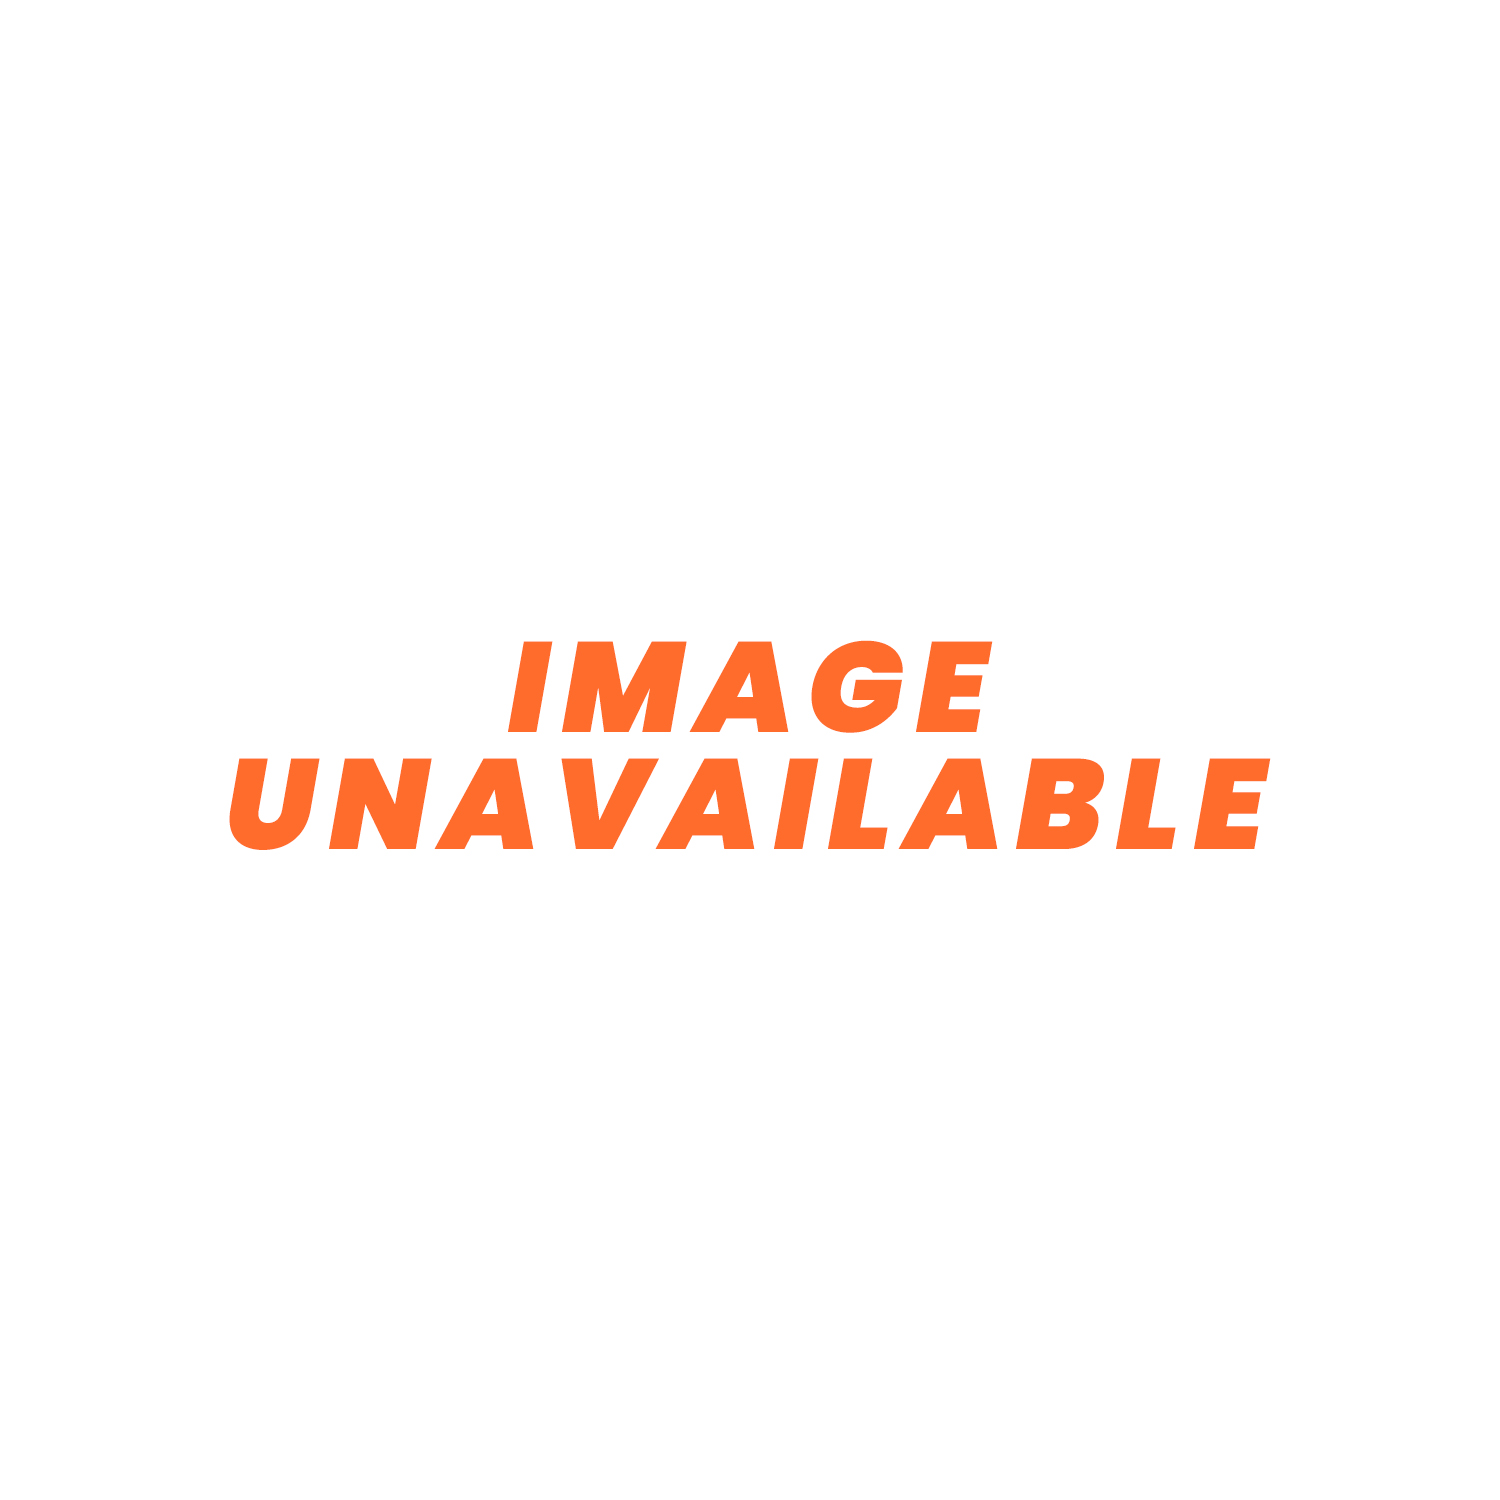 "SPAL Radiator Fan - 13.0"" (330mm) Push VA13-AP70/LL-35S 1404cfm"